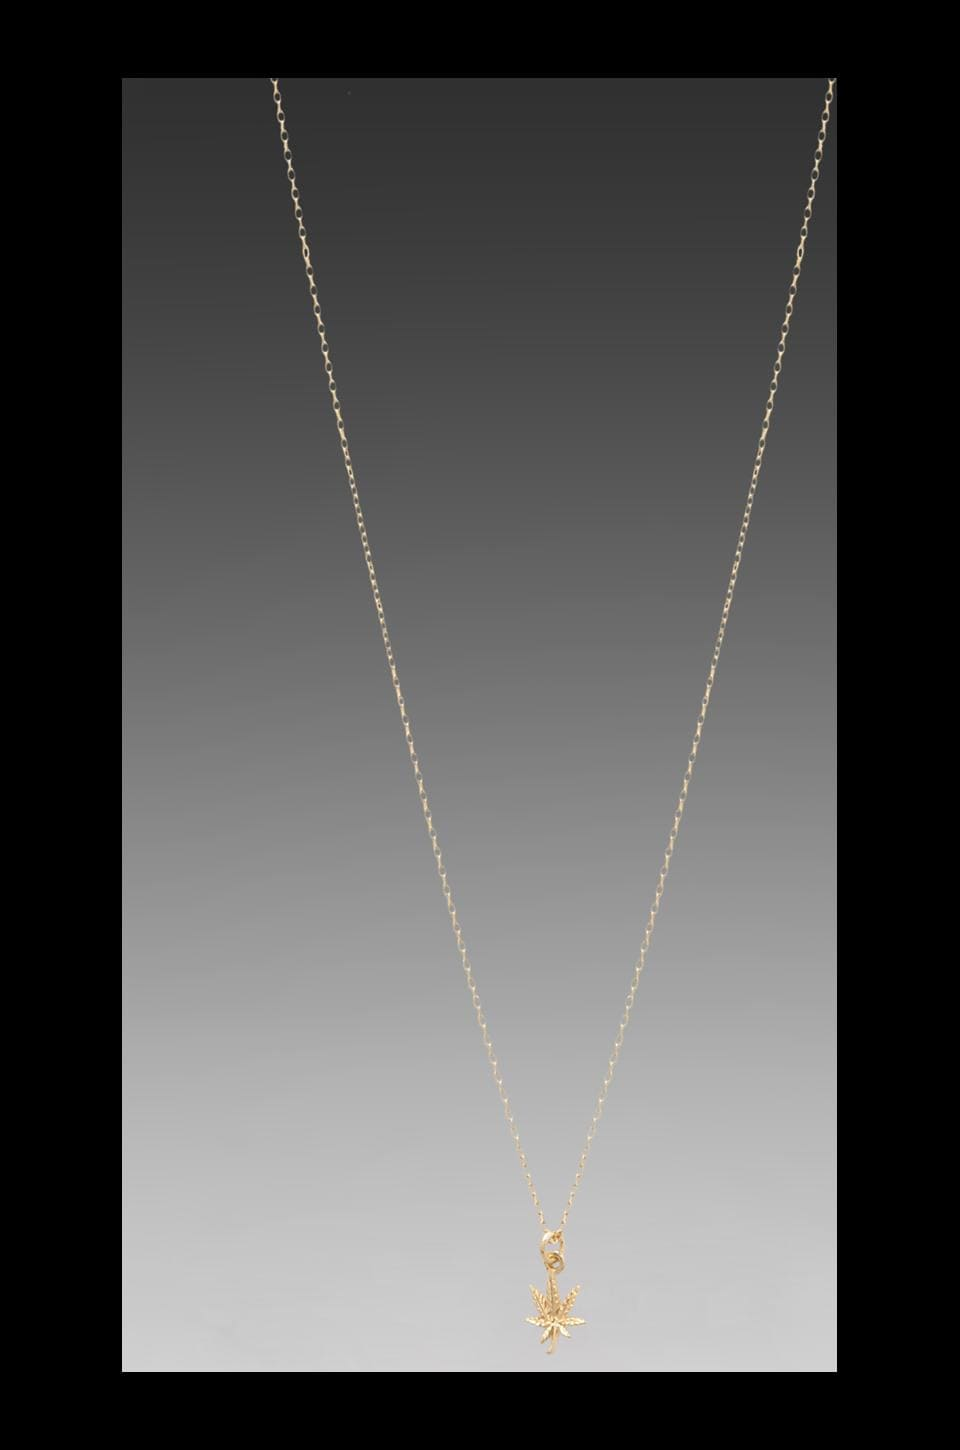 Bing Bang Mary Jane Necklace in Yellow Gold